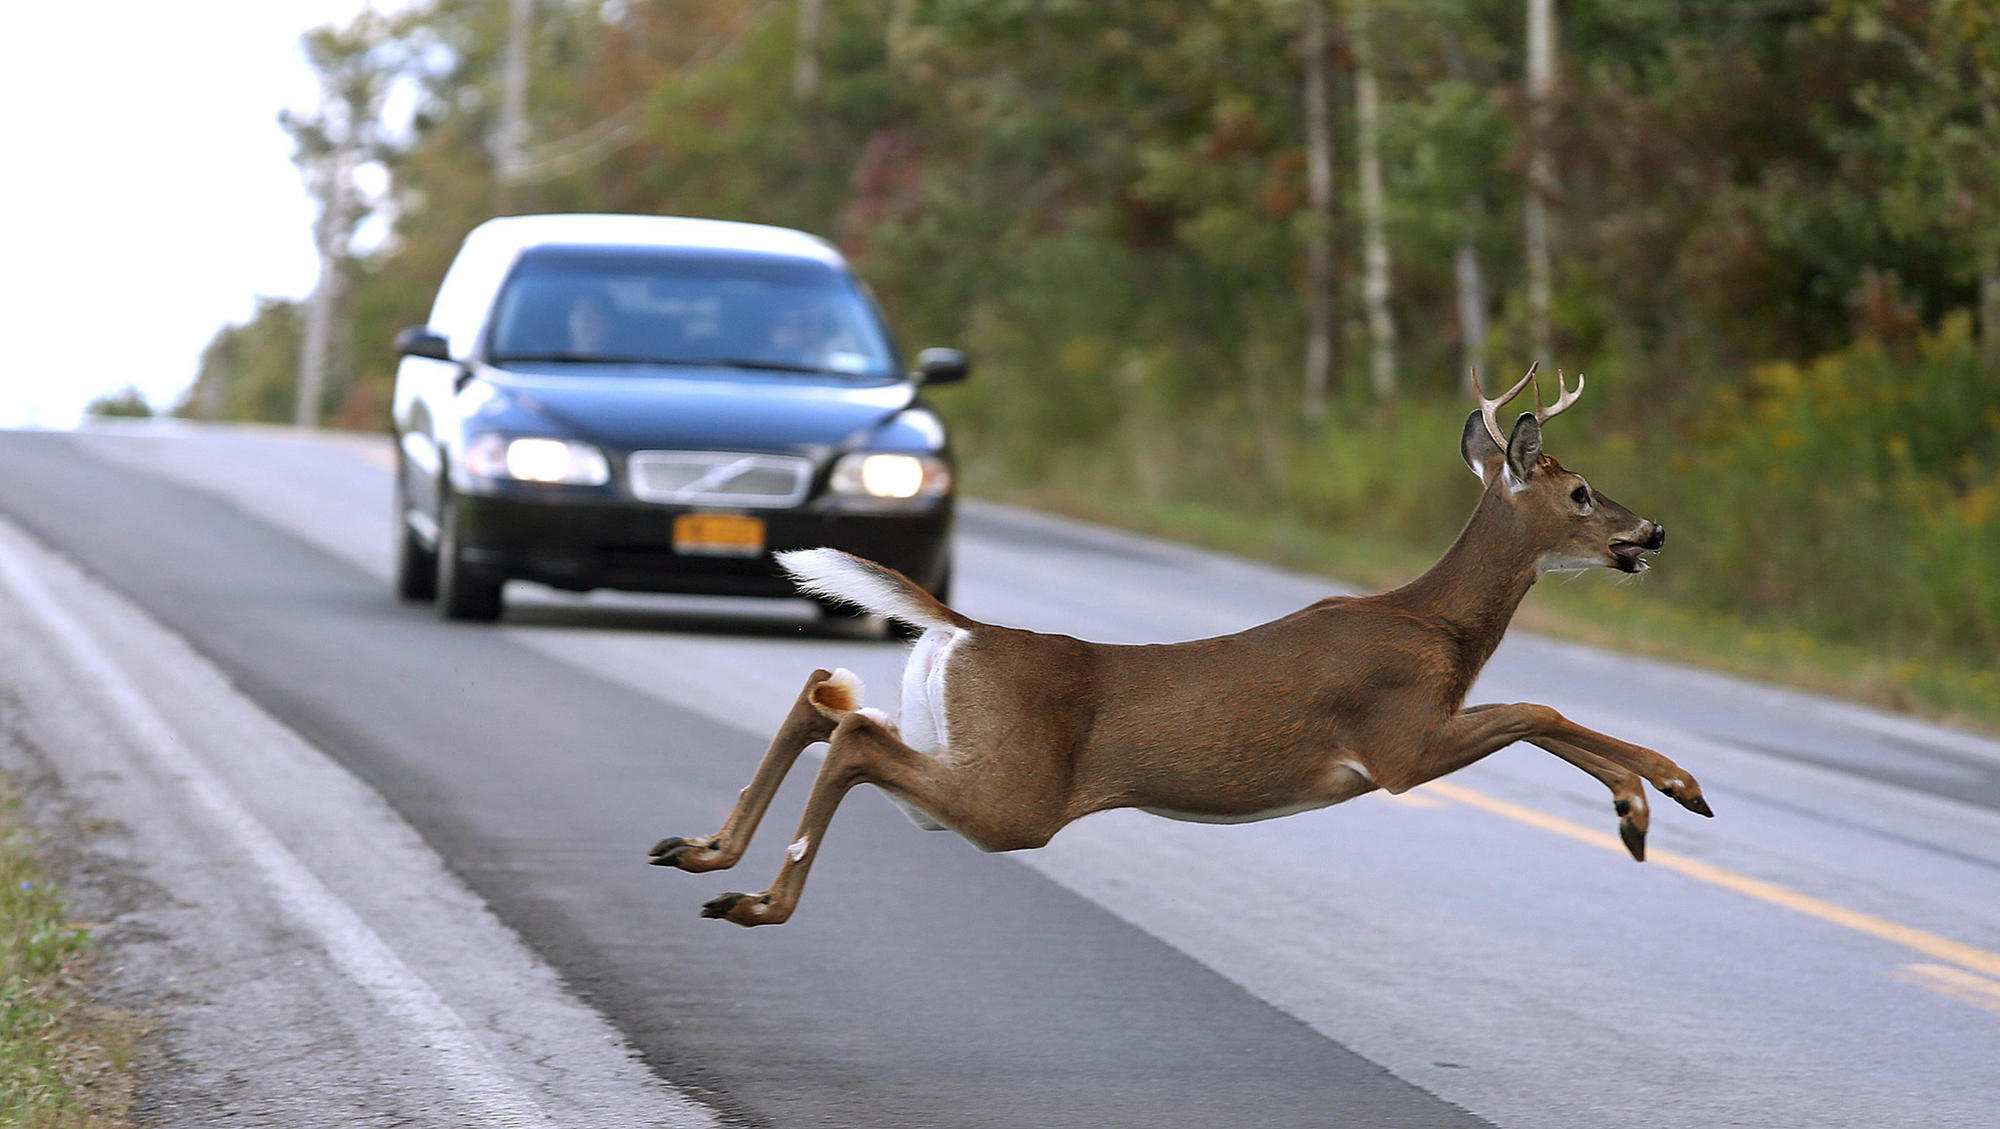 Illinois drivers beware: Deer are romancing, and they're on the roads